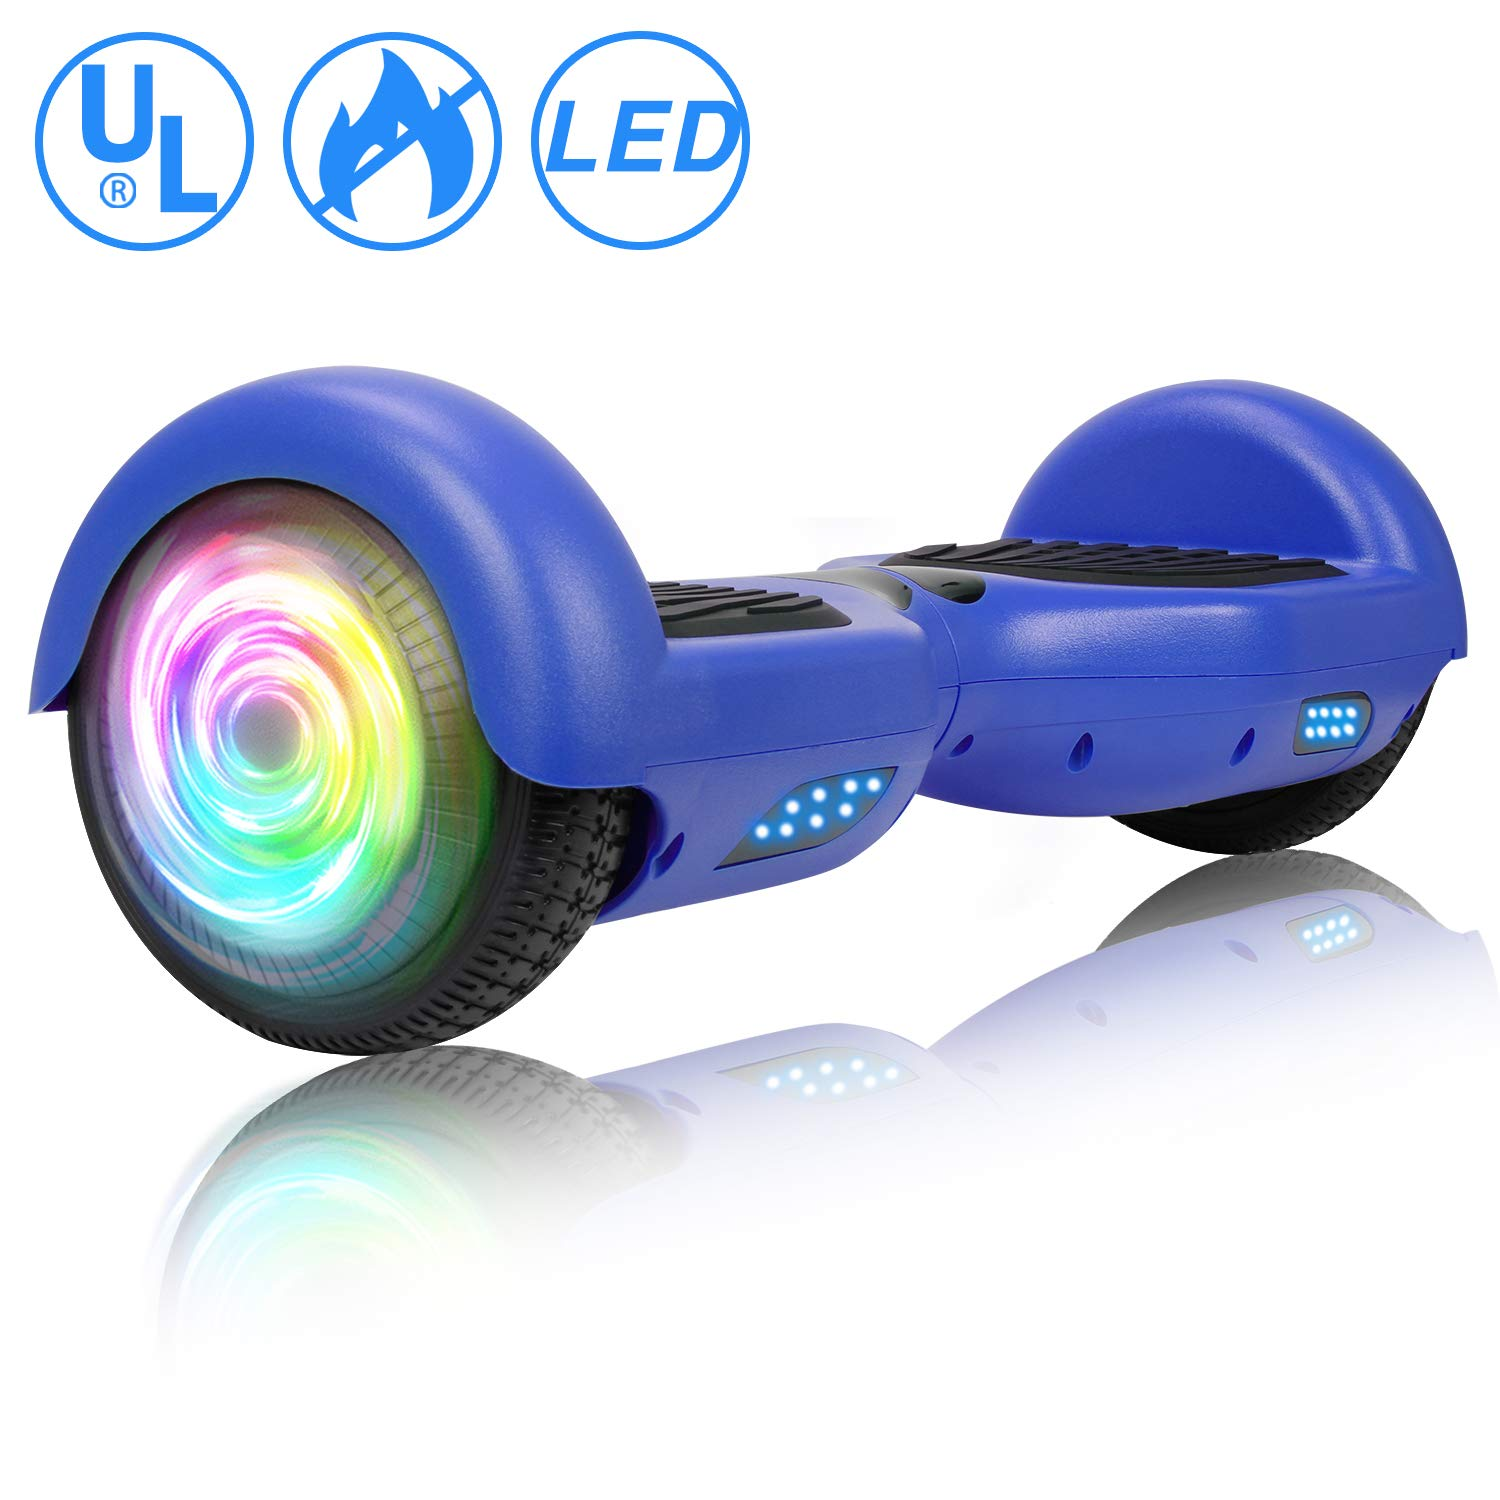 SISIGAD Hoverboard, Self Balancing Hoverboard, 6.5'' Two-Wheel Self Balancing Scooter, Smart Hover Board for Kids Gift, Adult Electric Scooter, with LED Lights and Free Carrying Bag UL2272 Certified by SISIGAD